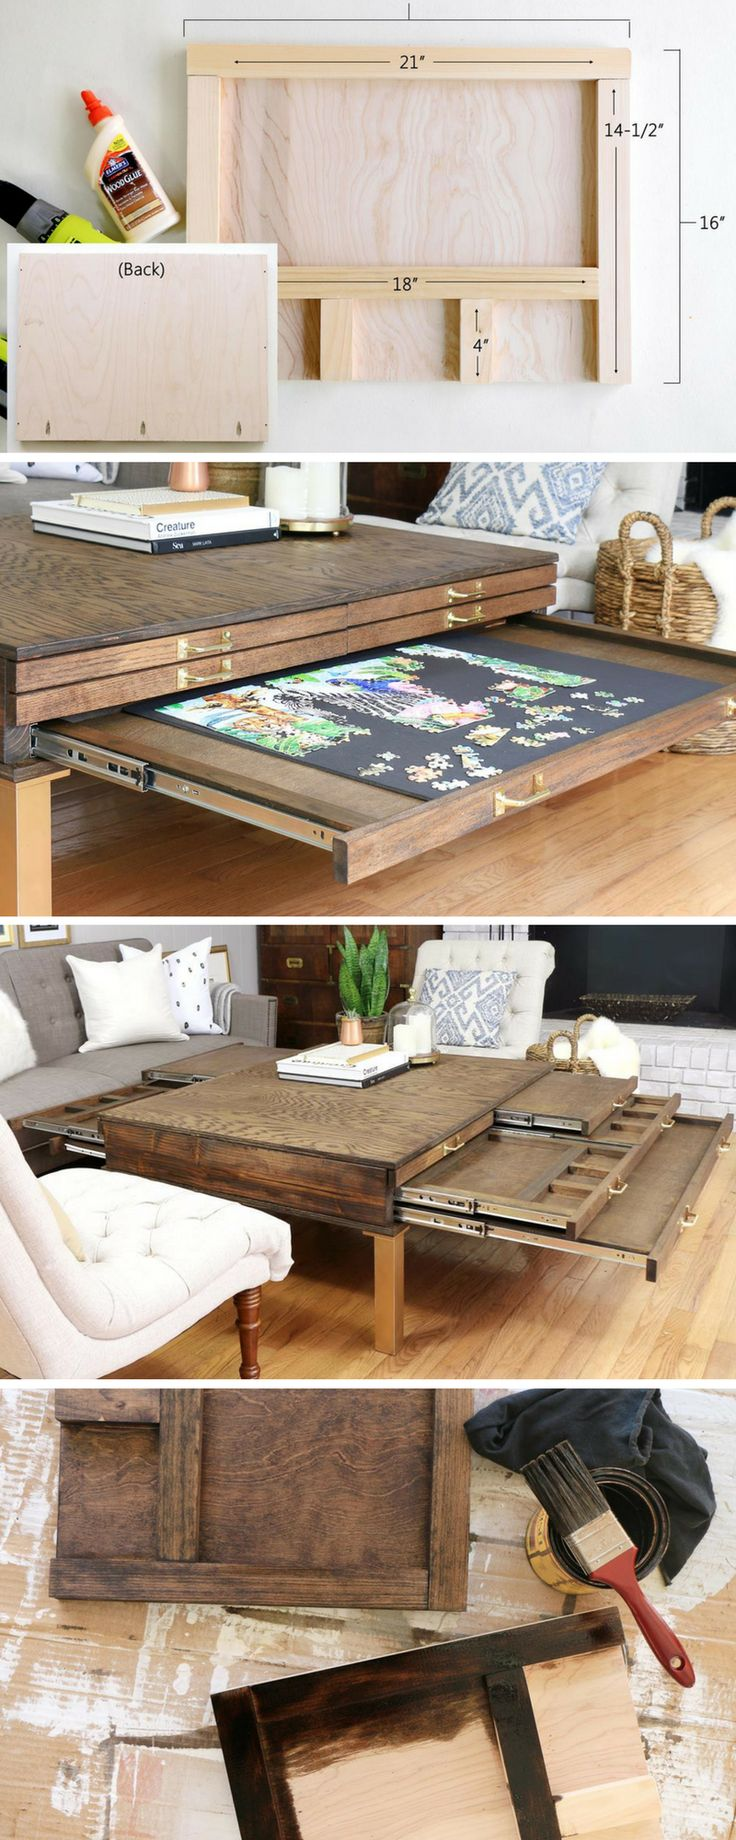 How to Build a DIY Coffee Table with Pullouts for Board Games | Free Project Plan via Homemade by Carmona